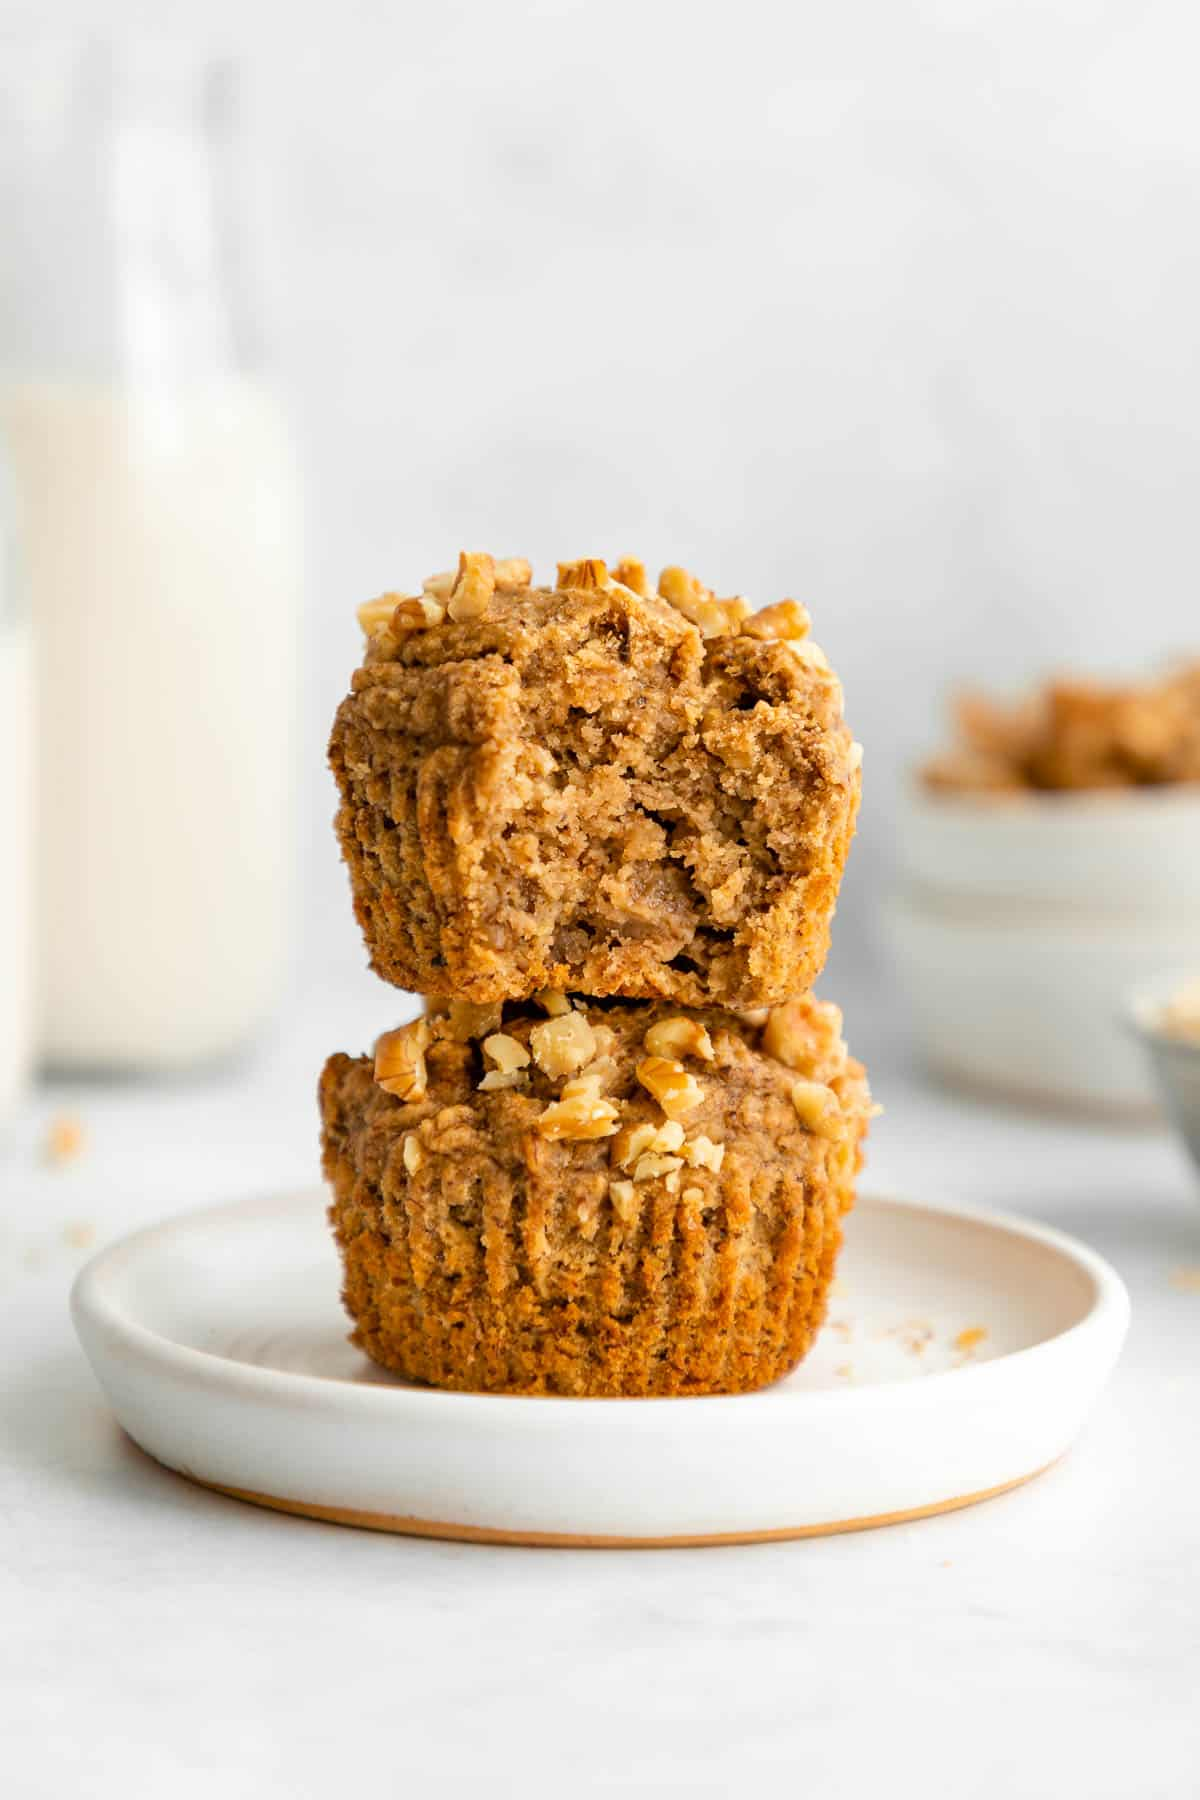 a stack of two vegan banana muffins on a white plate with a bite taken out of the top one